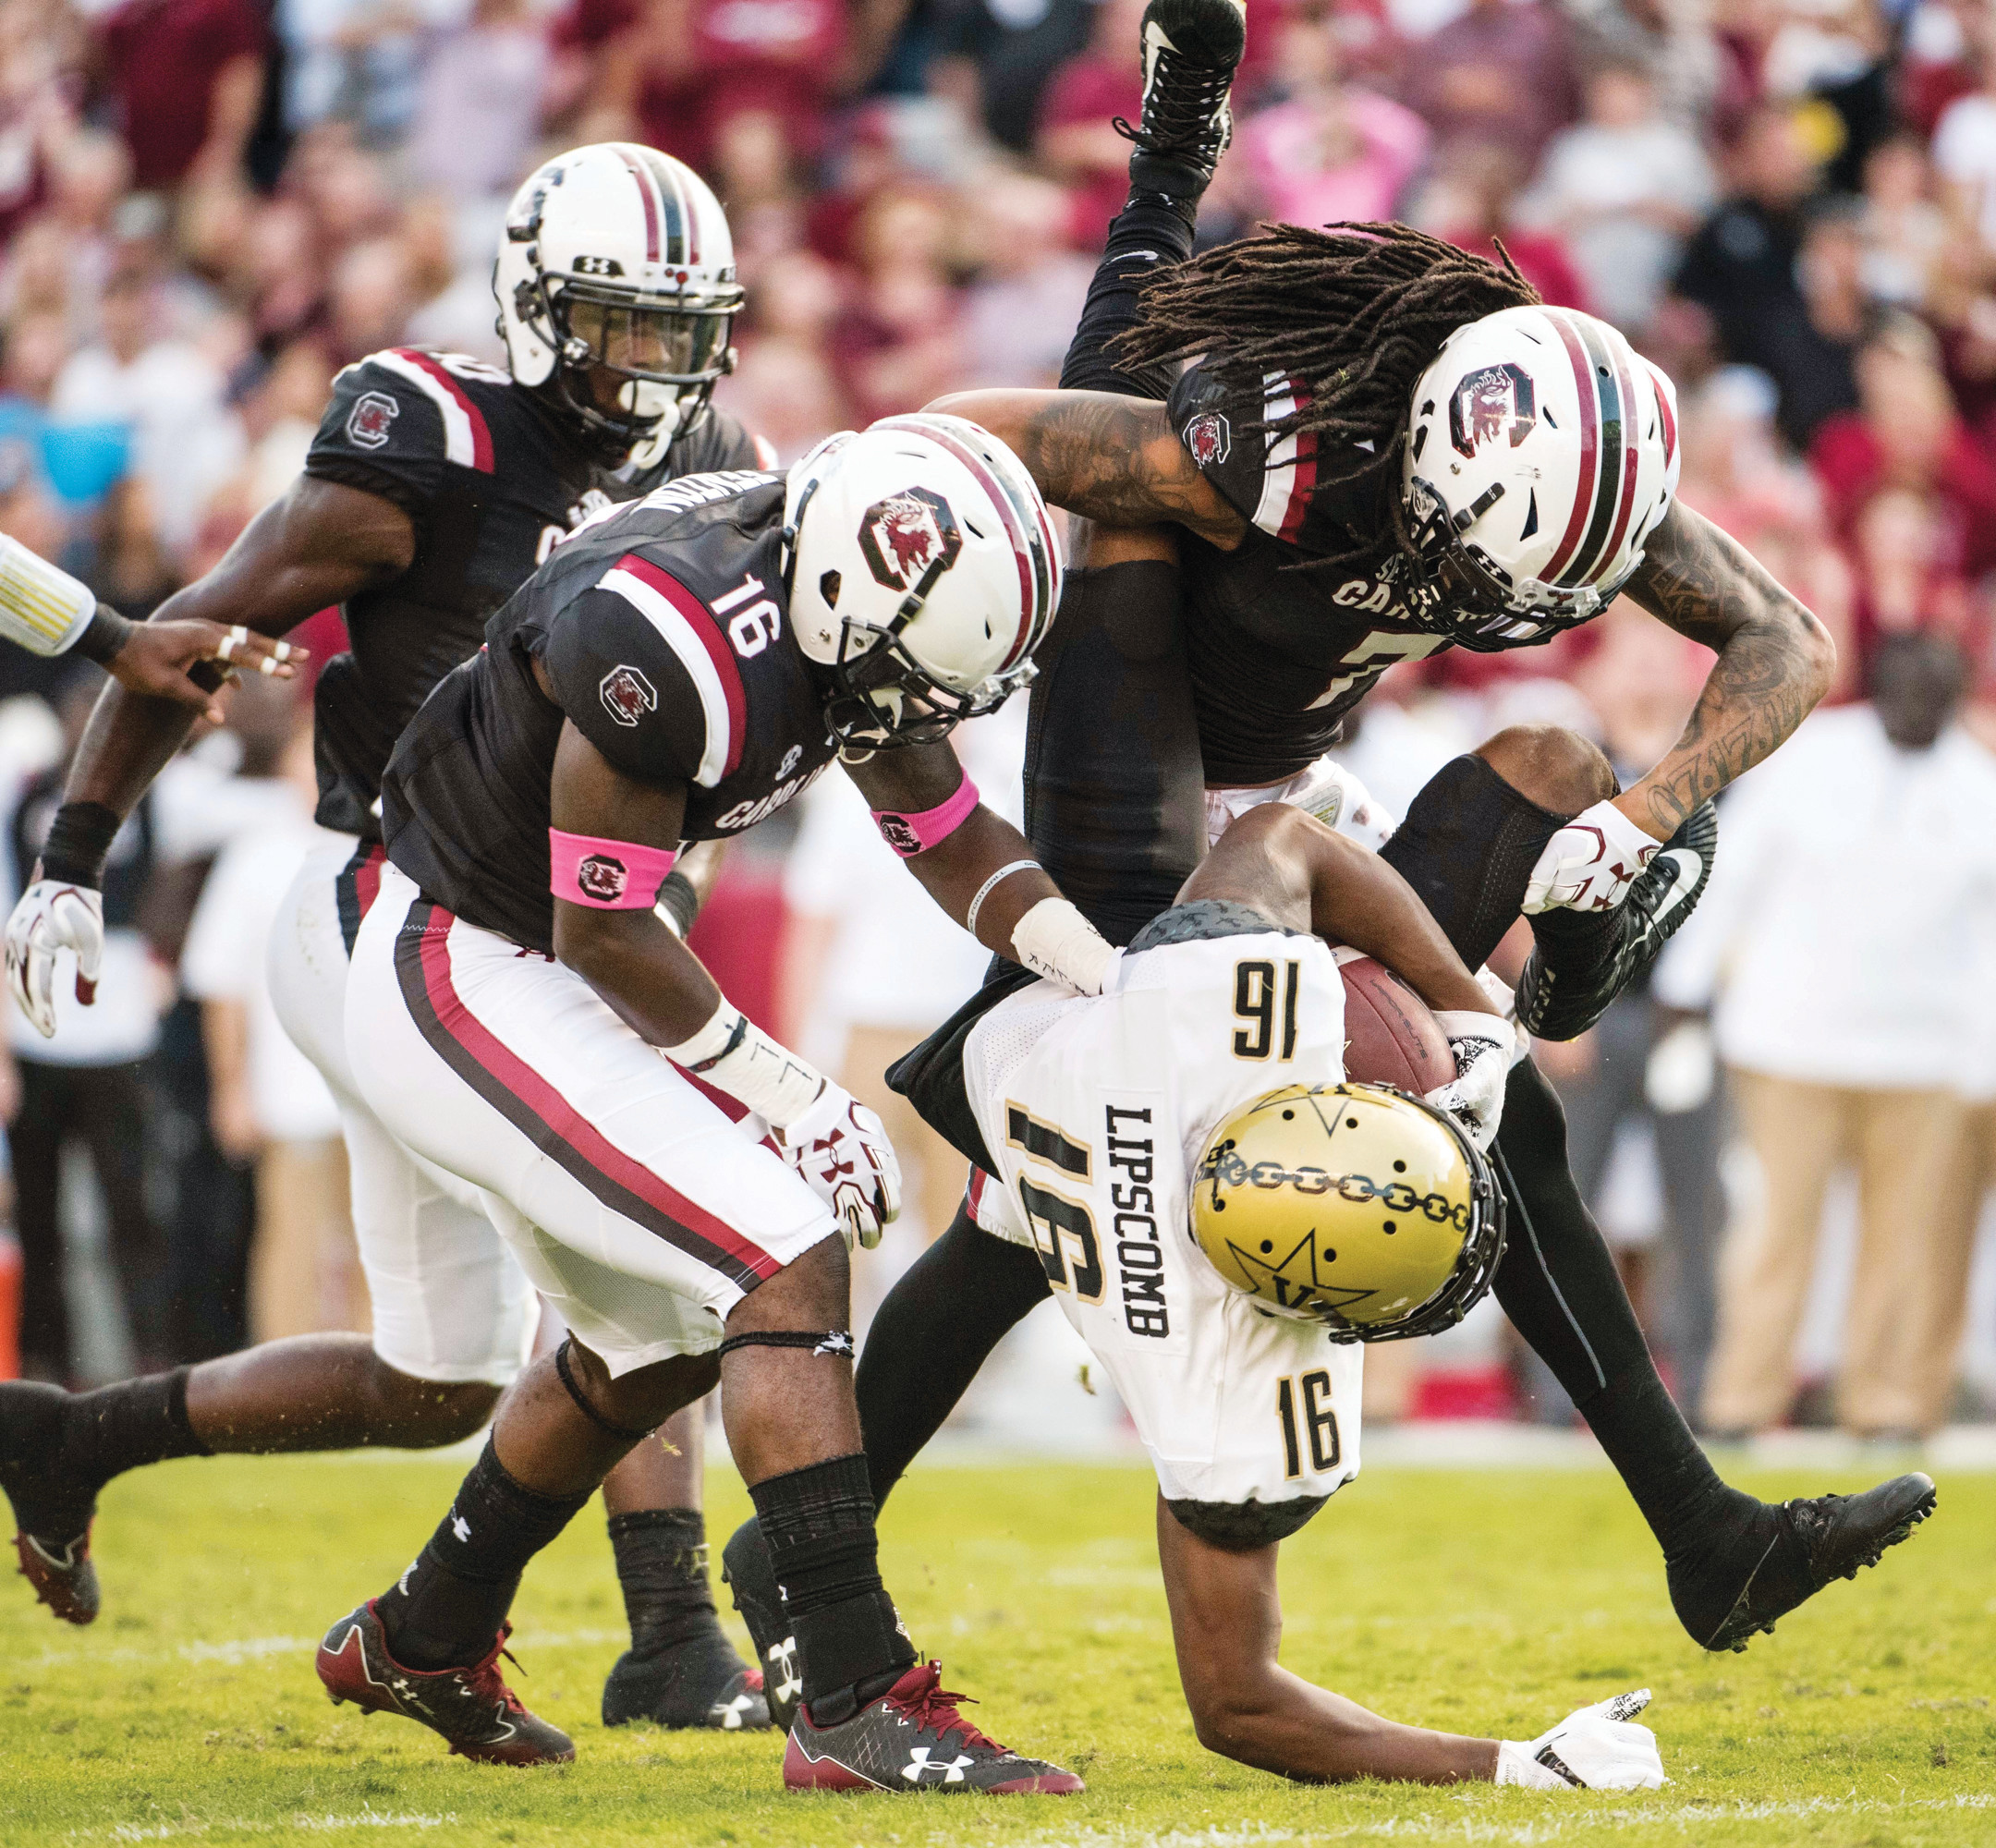 THE ASSOCIATED PRESS  South Carolina defensive backs JaMarcus King (7) and Rashad Fenton (16) tackle Vanderbilt wide receiver Kalija Lipscomb (16) during the Gamecocks' 34-27 victory on Saturday in Columbia